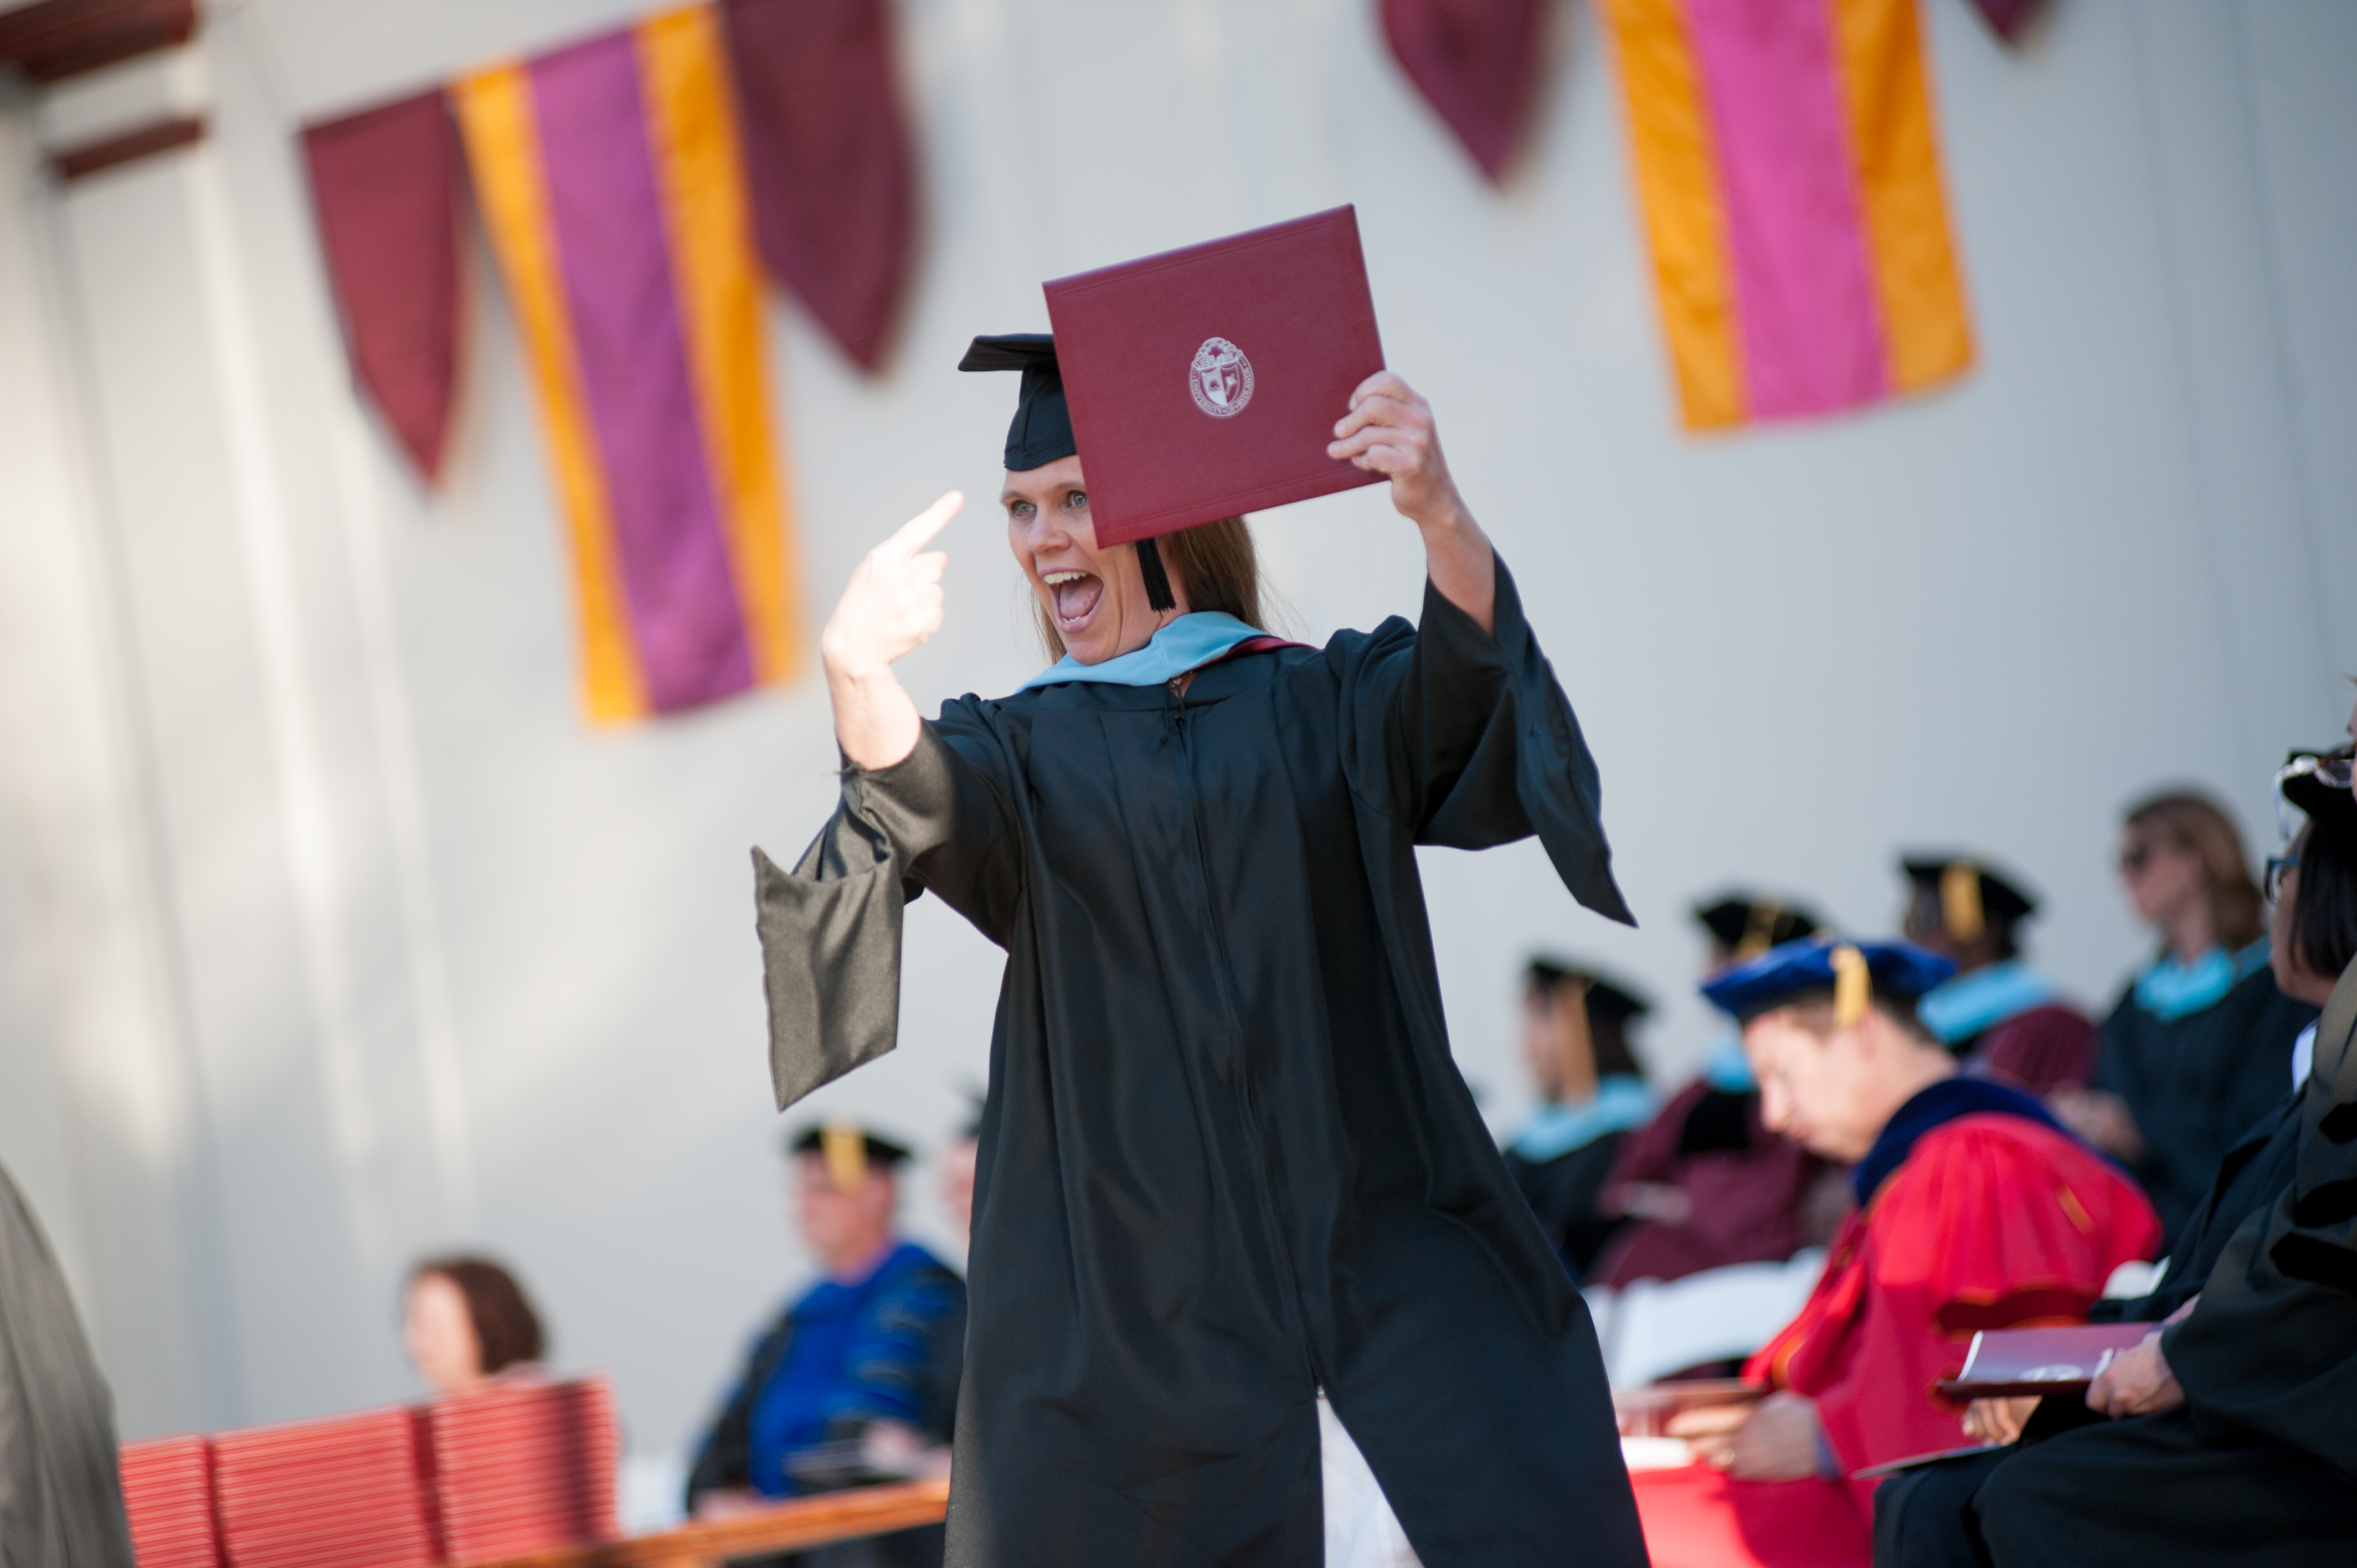 Graduate Excited about Diploma